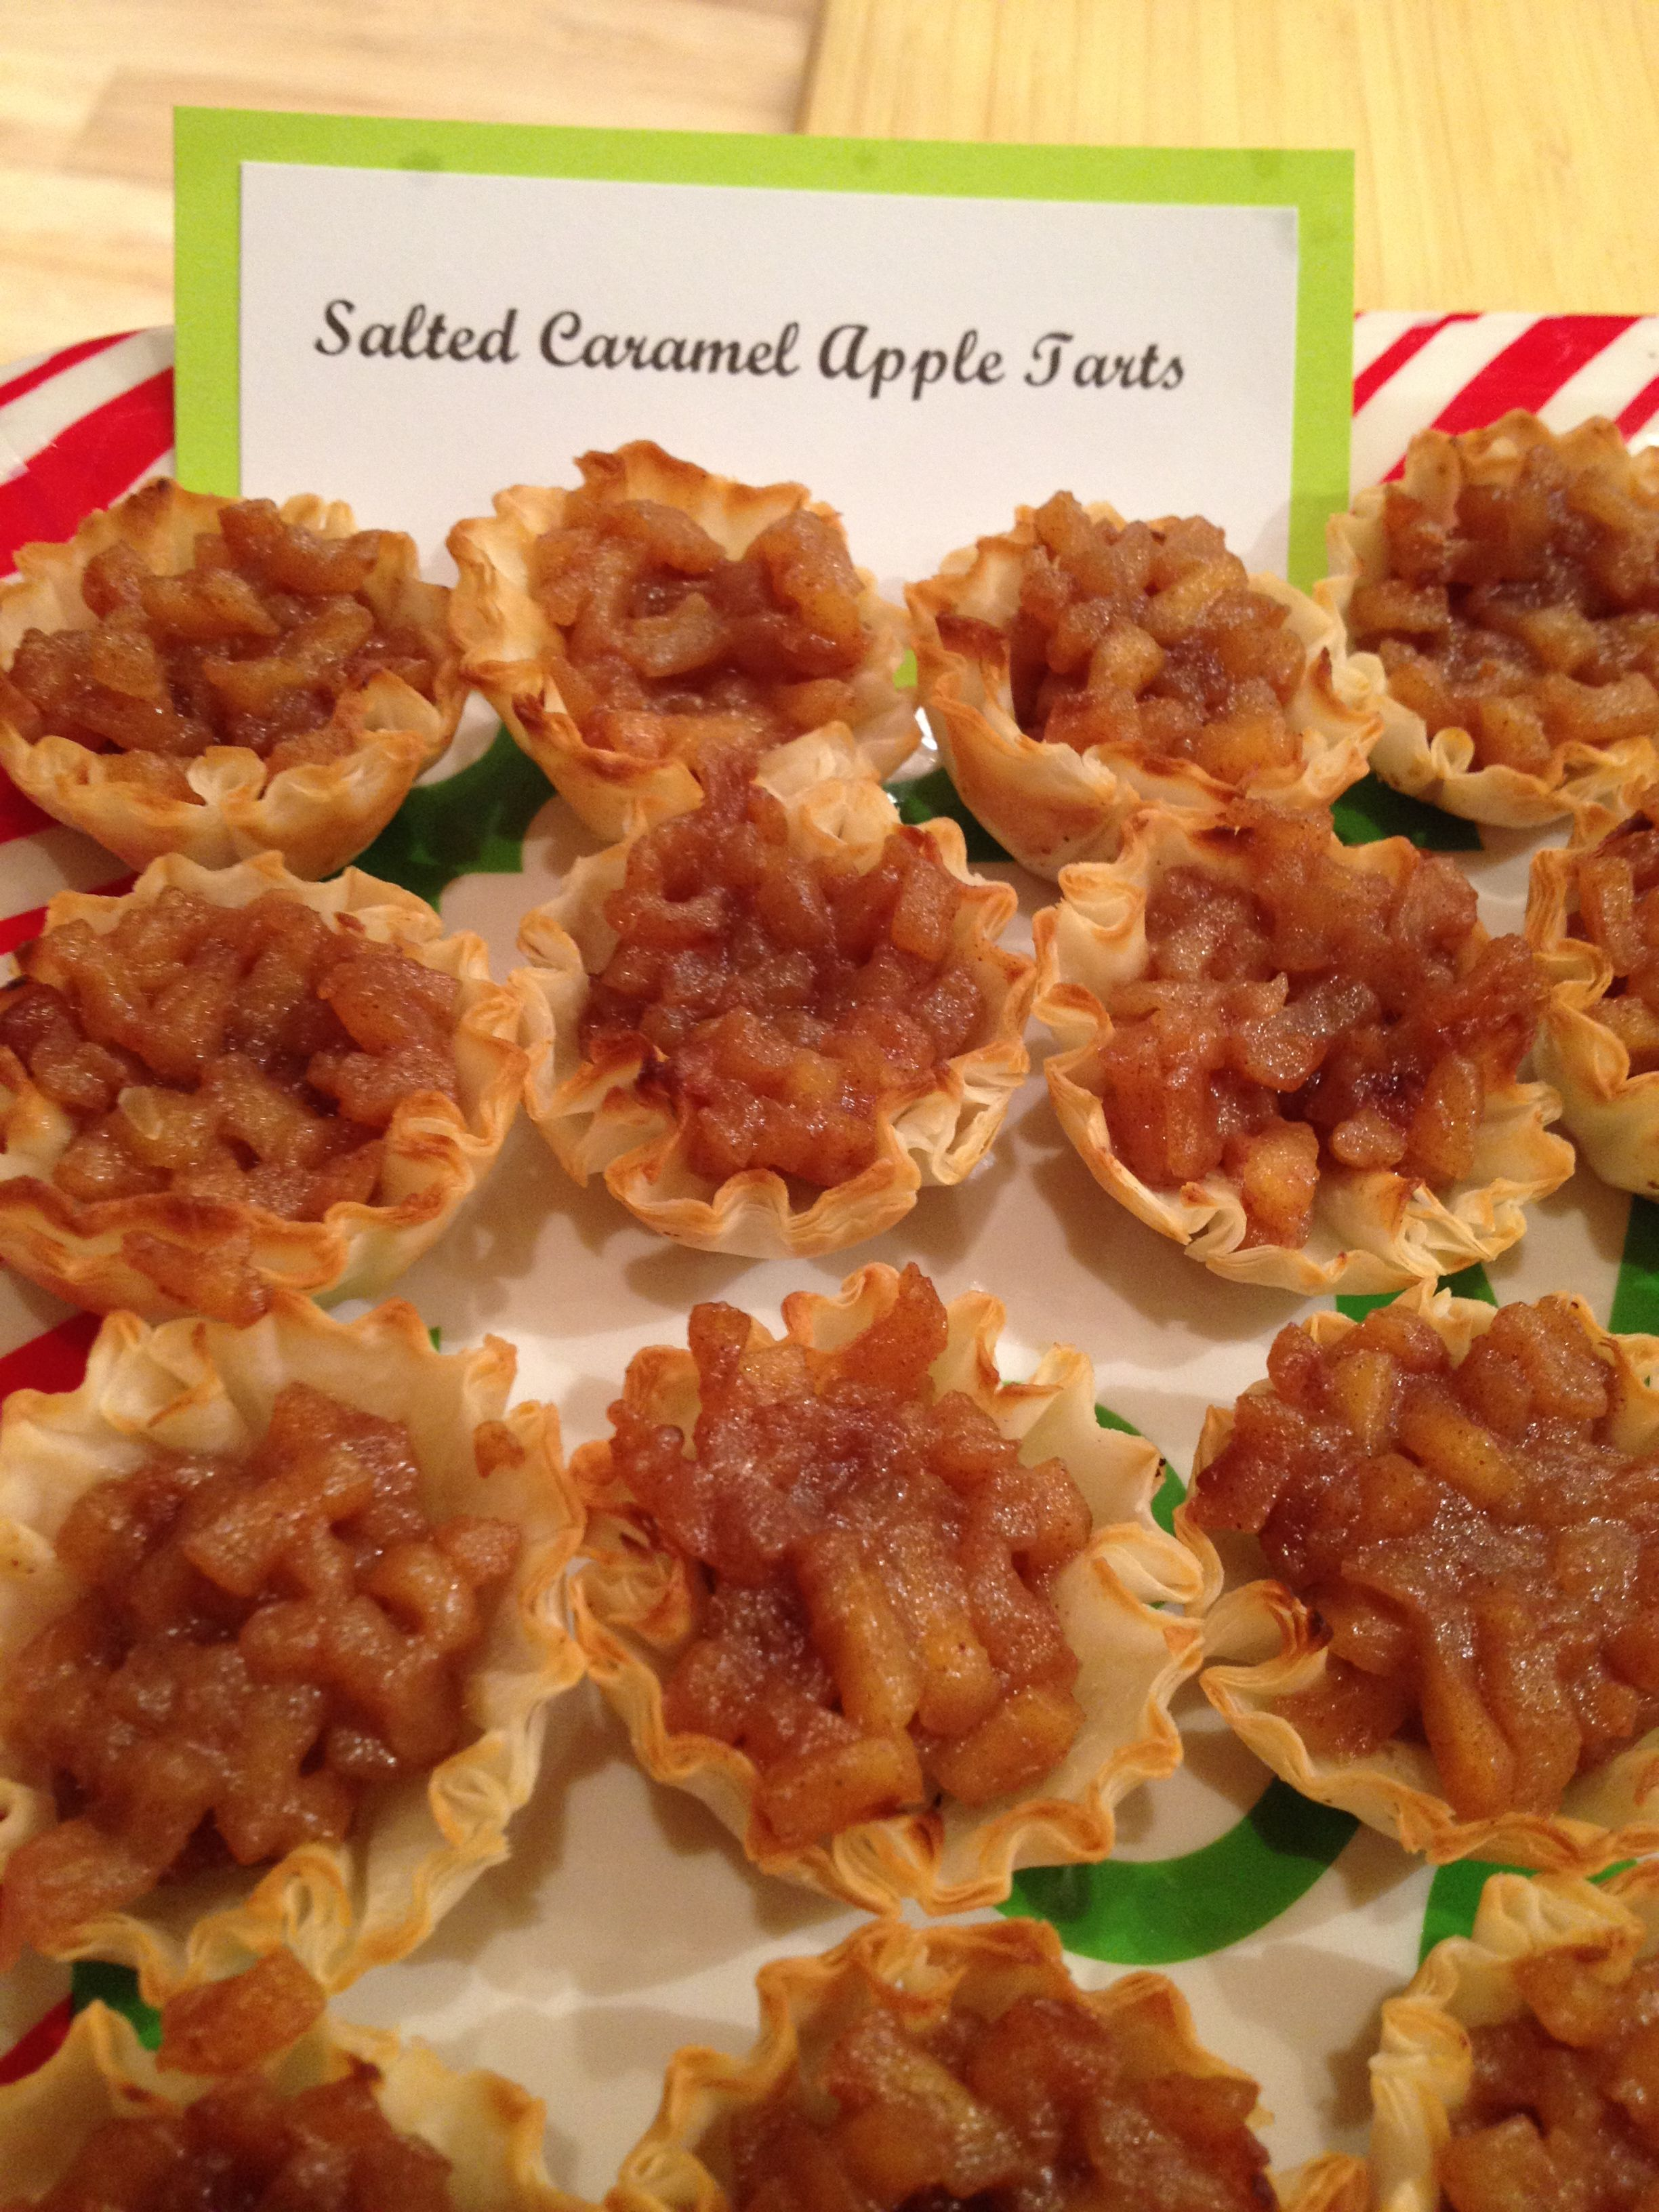 Salted Caramel Apple Tart Filling     Sweet & Saucy Salted Caramel (Sold at Mary Sherwood Lake Living)  Recipe by Chef Yvonne Hoffman  http://yvonnecooks.com/